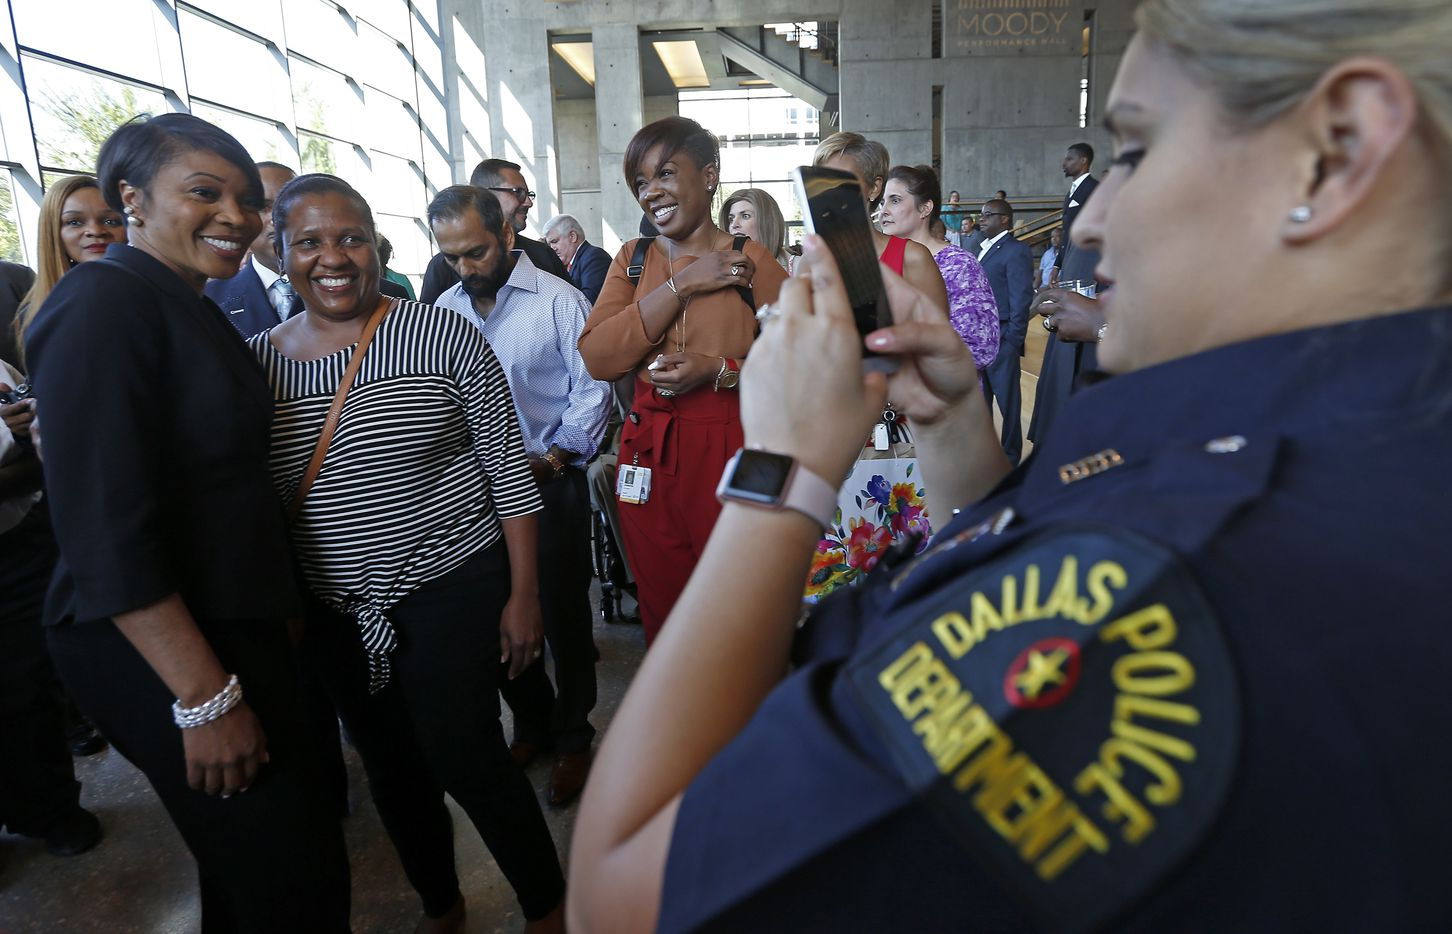 Dallas police Officer Diana Browning (right) takes pictures of new Dallas Police Chief U. Renee Hall (left) and Margertree Holmes during a meet-and-greet reception Monday.